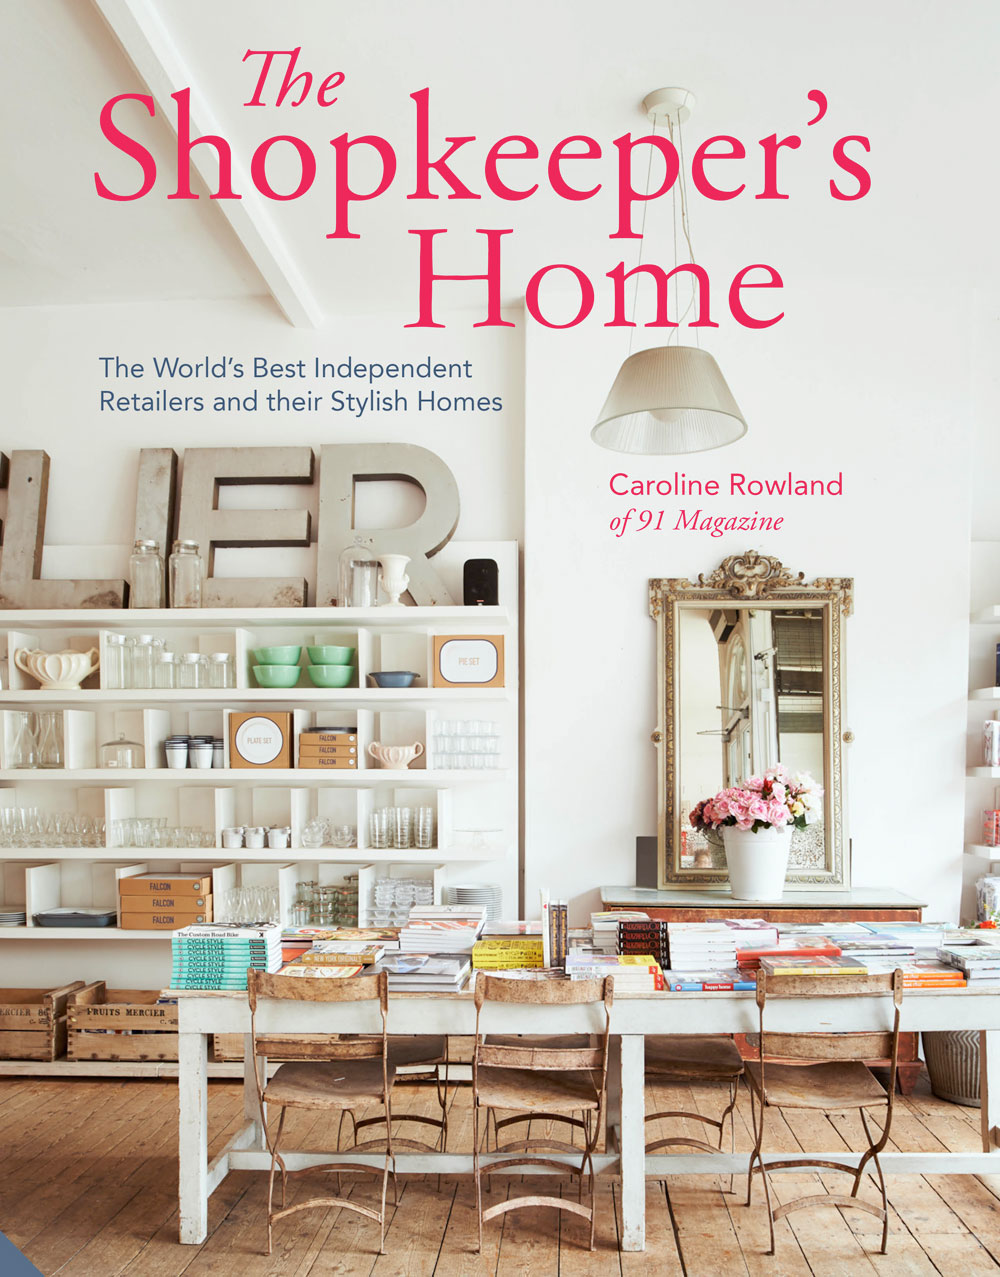 the shop keepers Home by Caroline Rowland